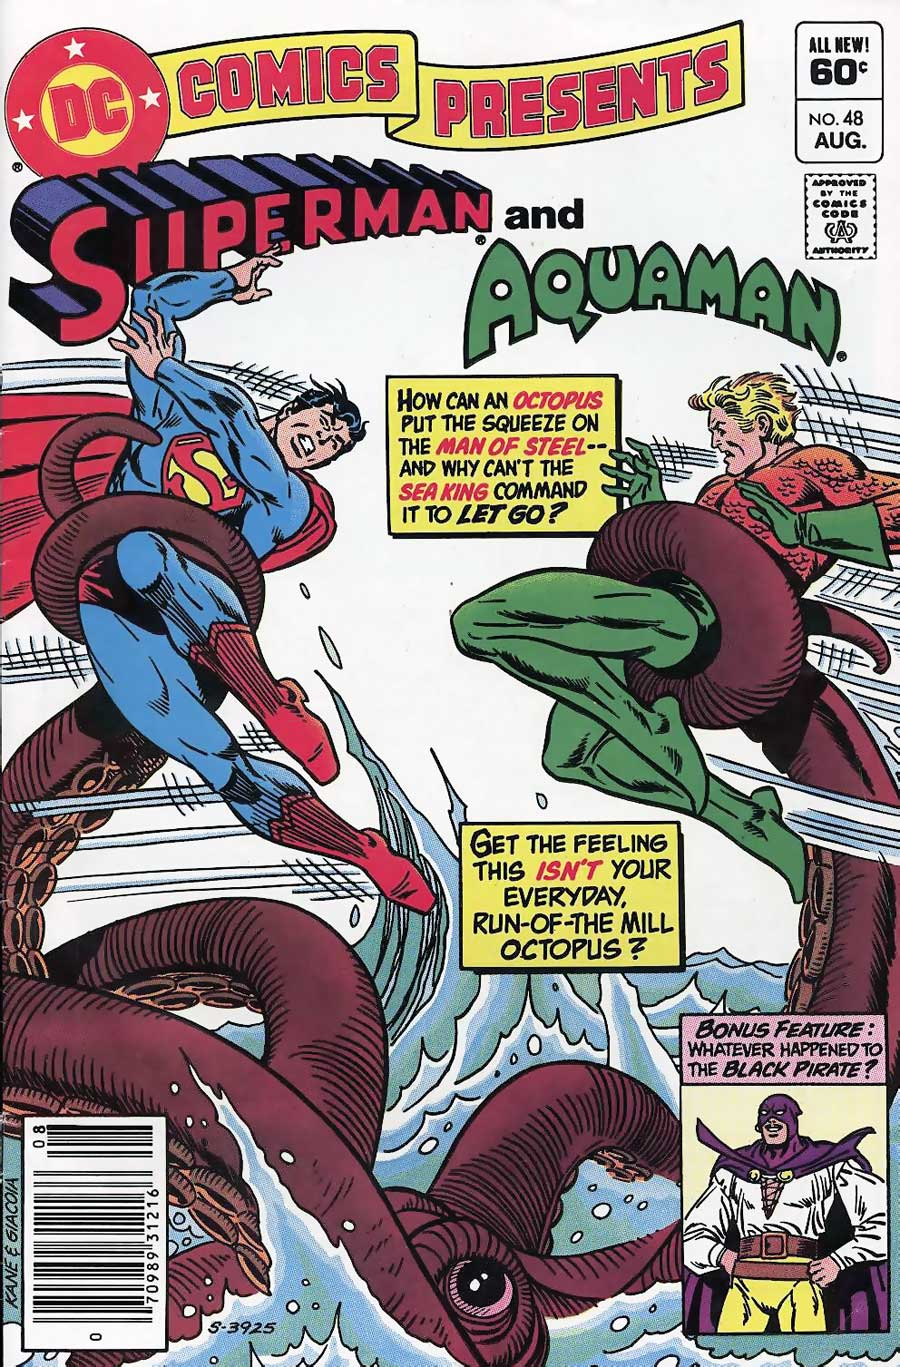 DC Comics Presents #48 by Dan Mishkin, Gary Cohn, Irv Novick, and Frank McLaughlin